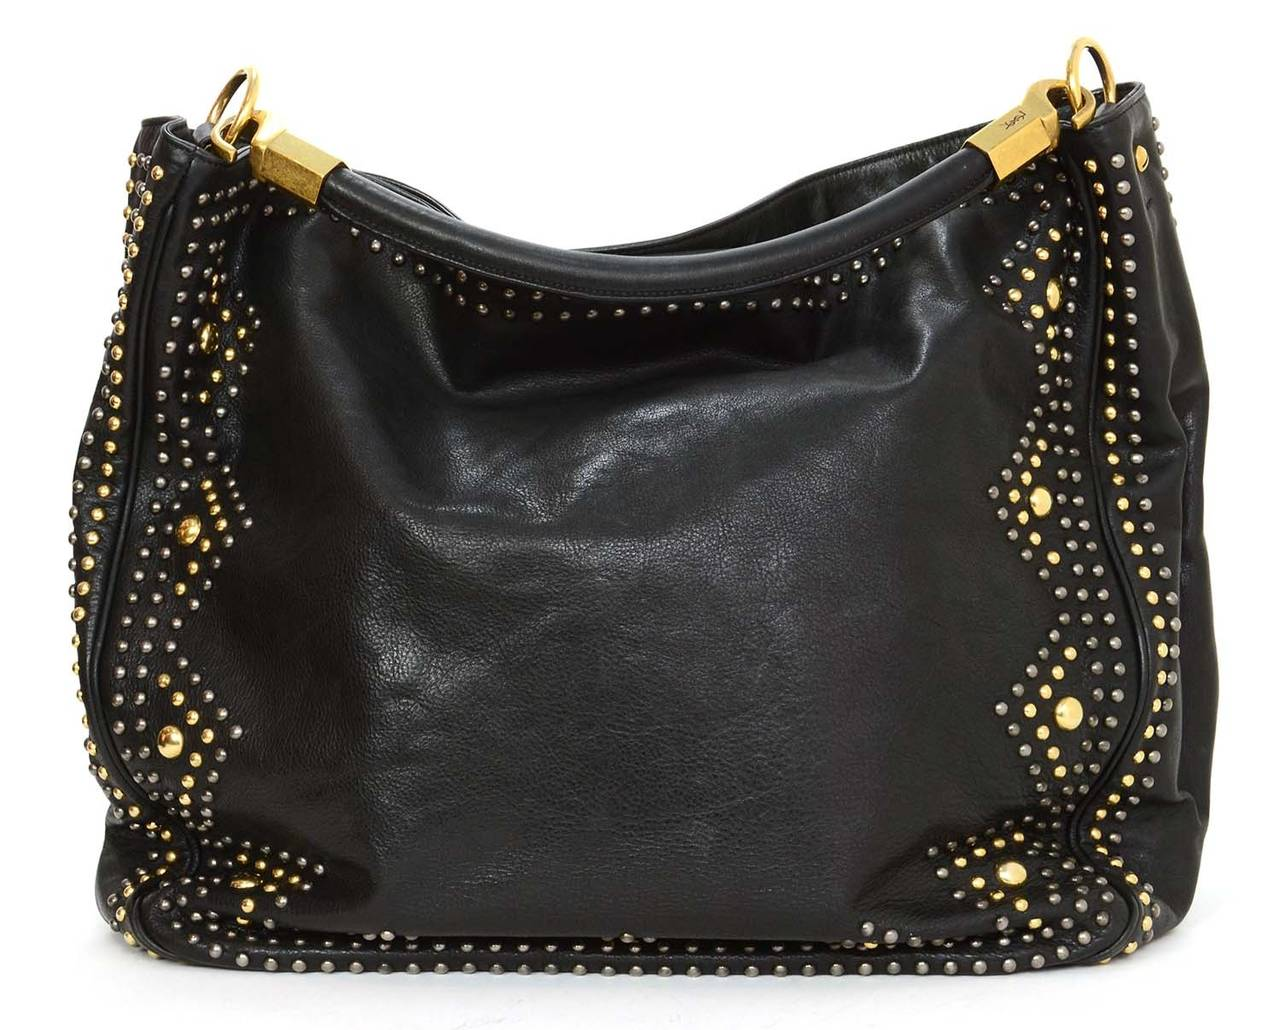 YSL YVES SAINT LAURENT Black Leather Roady Studded Hobo Bag rt ...